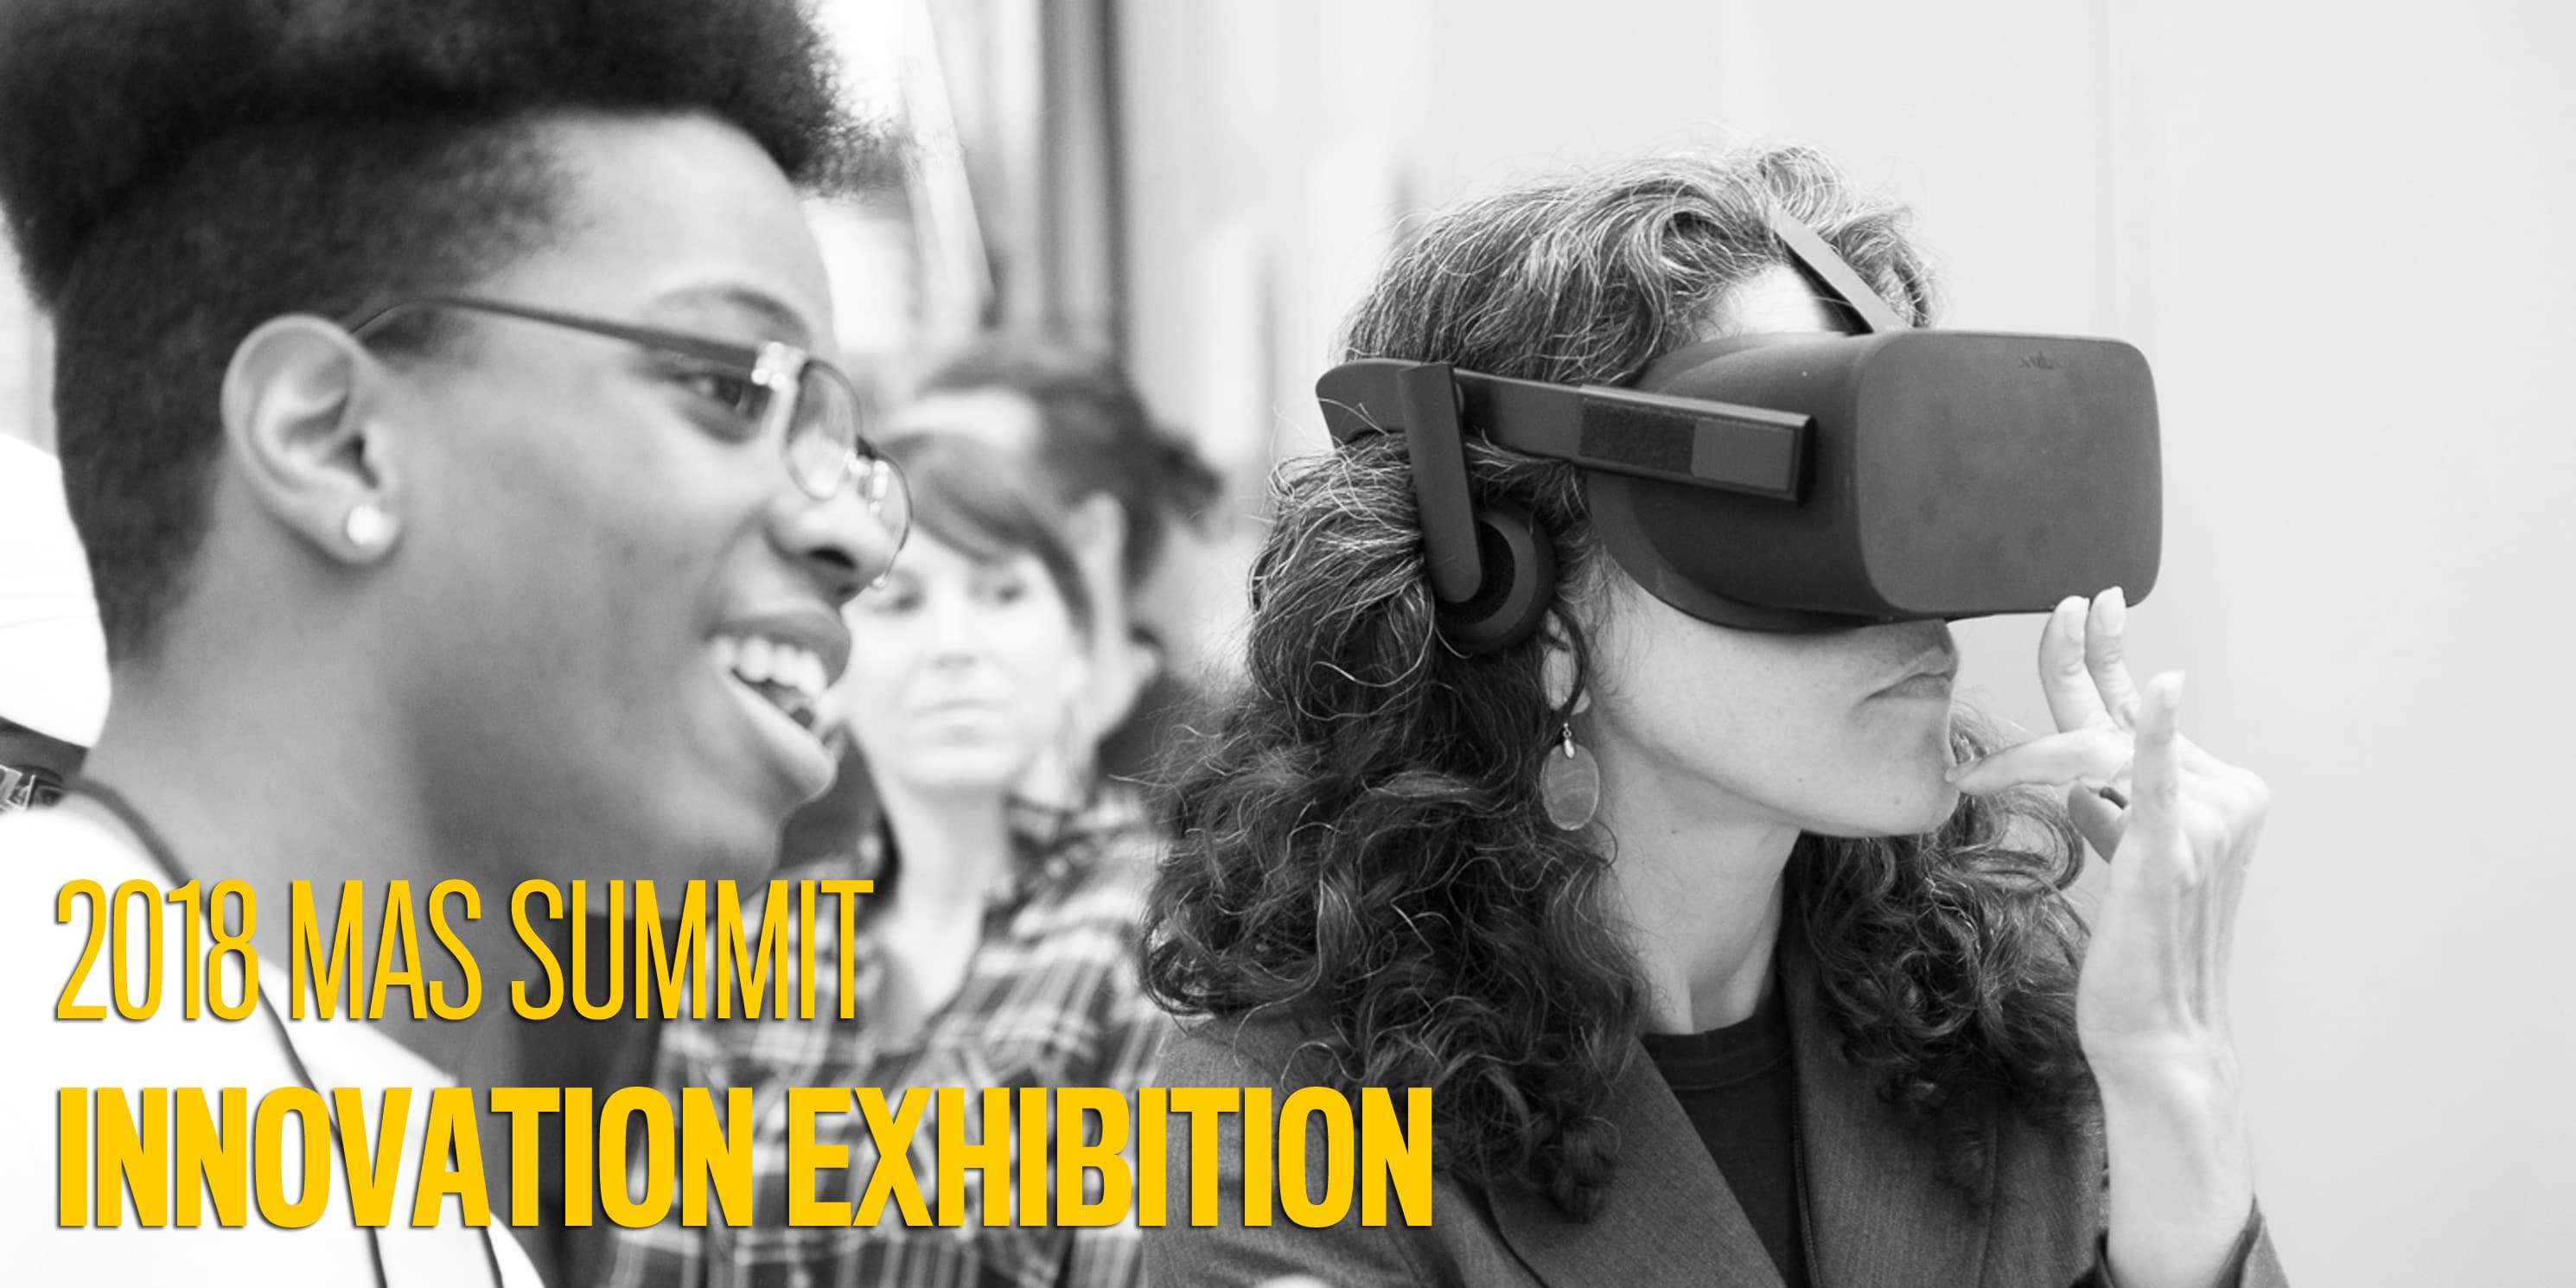 attendees using virtual reality headsets at the 2017 Innovation Exhibition